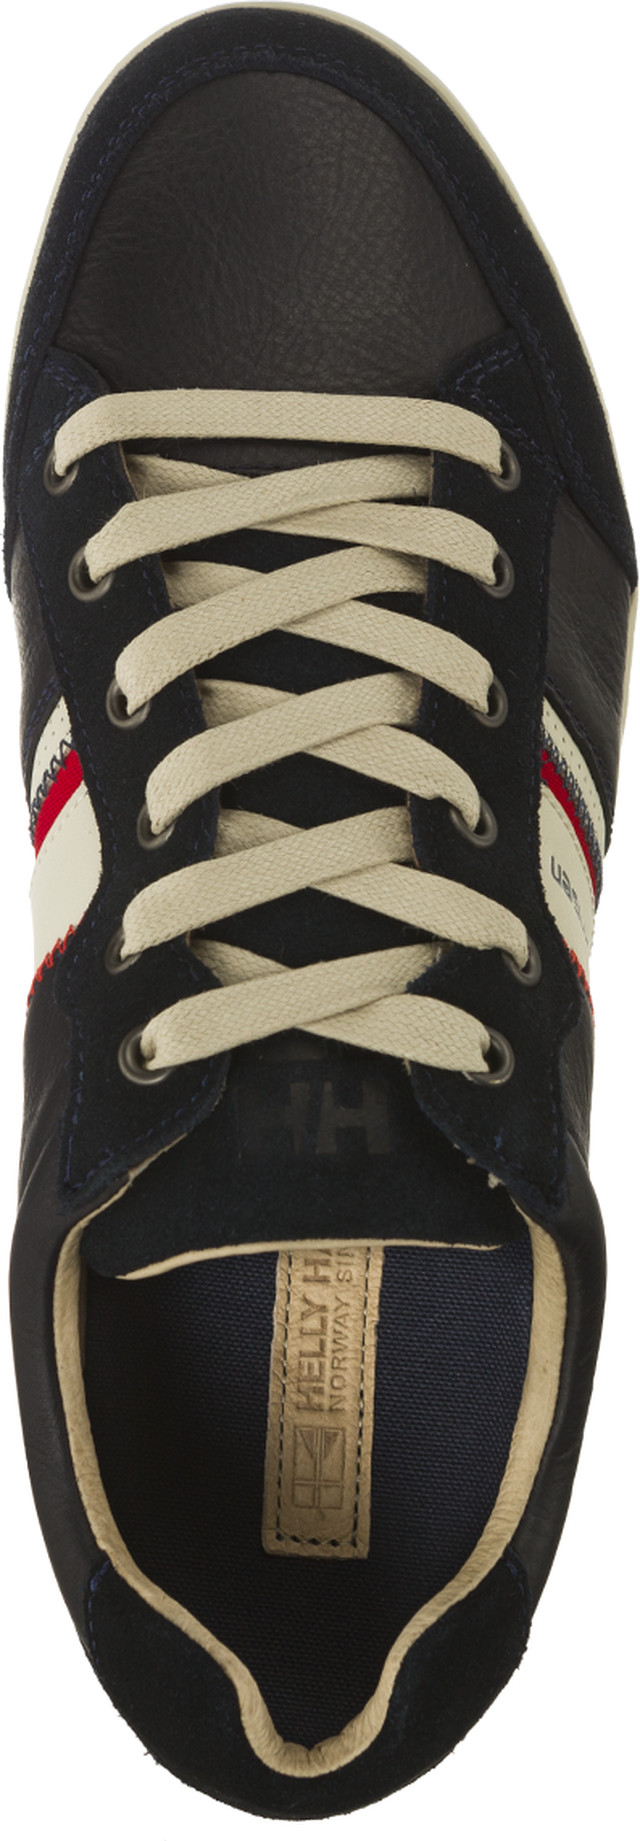 Buty Helly Hansen  <br/><small>Kordel Leather 597 </small>  10945-597